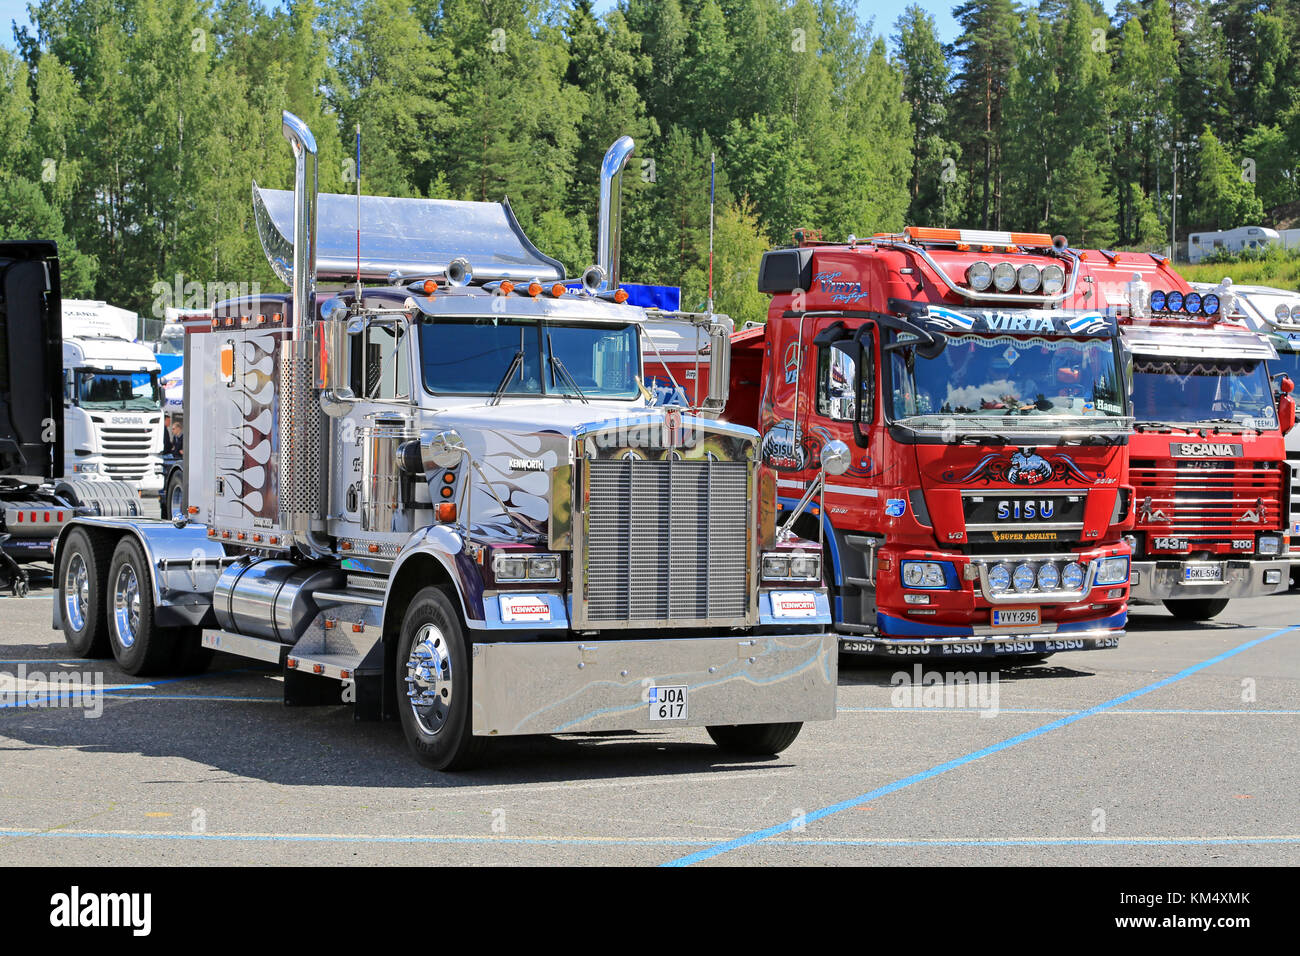 HAMEENLINNA, FINLAND - JULY 11, 2015: Classic Kenworth and Finnish cab over show trucks at Tawastia Truck Weekend - Stock Image